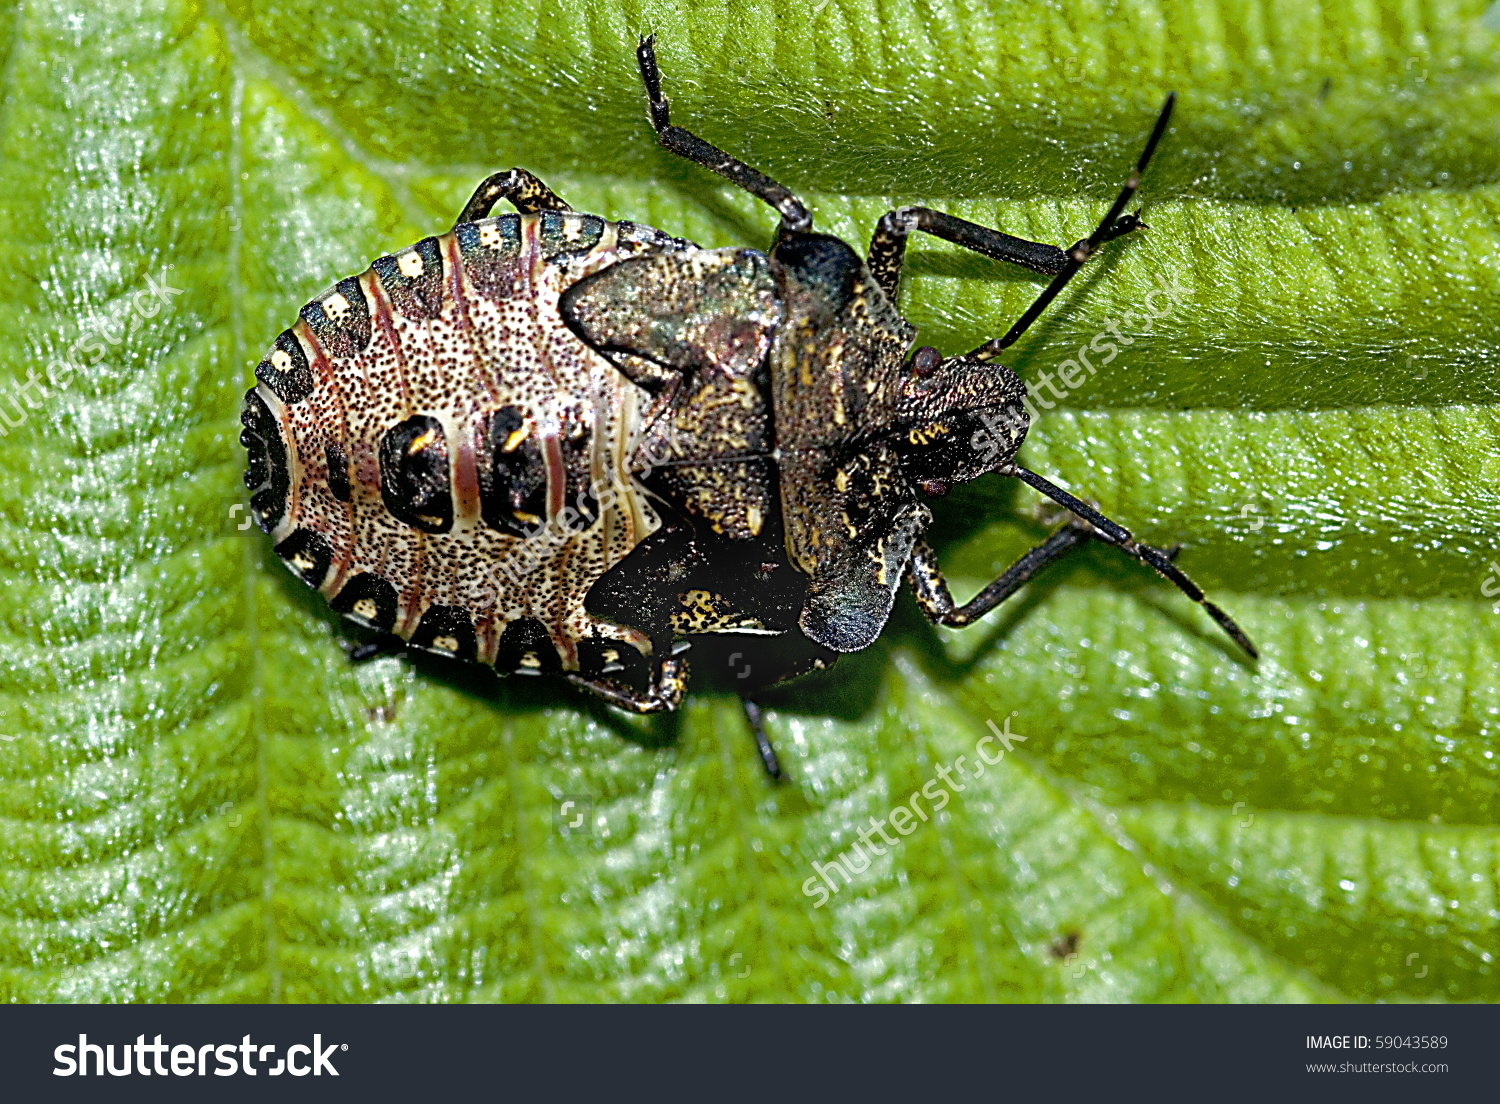 Nymph Of The Forest Bug (Pentatoma Rufipes) Stock Photo 59043589.